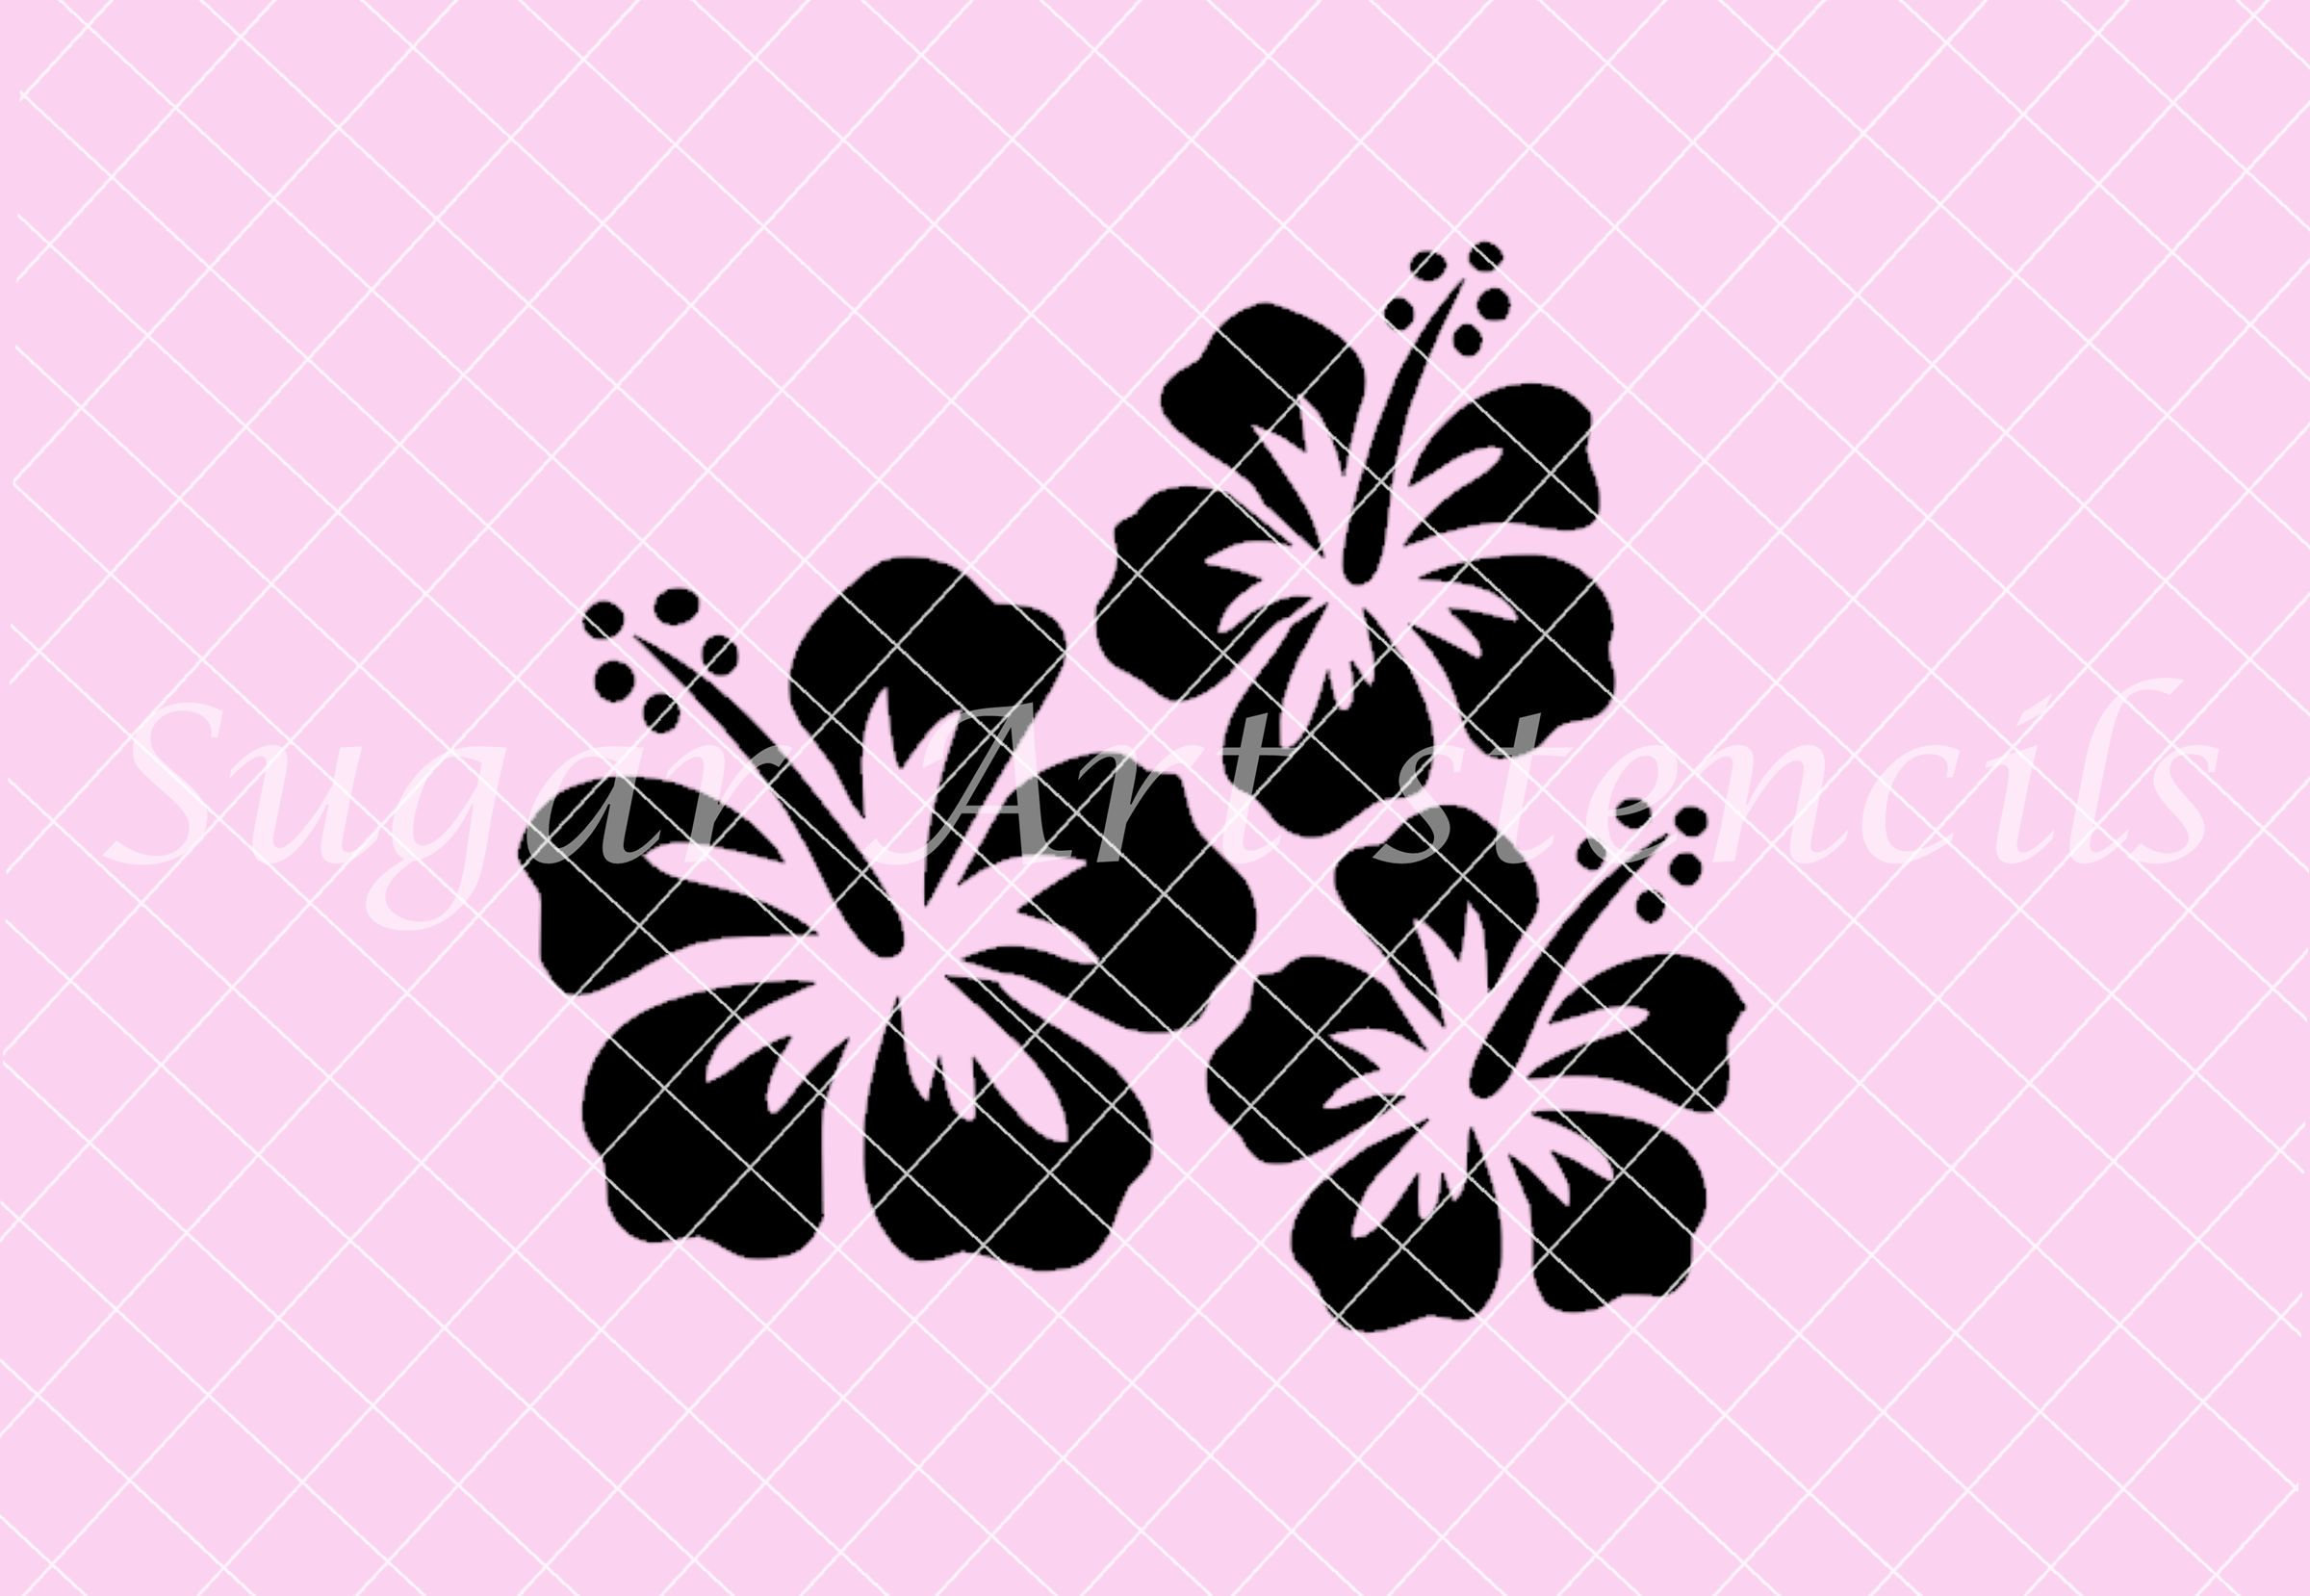 Cute flower stencil template ideas entry level resume templates hawaiian flower stencil best flower 2017 izmirmasajfo Images